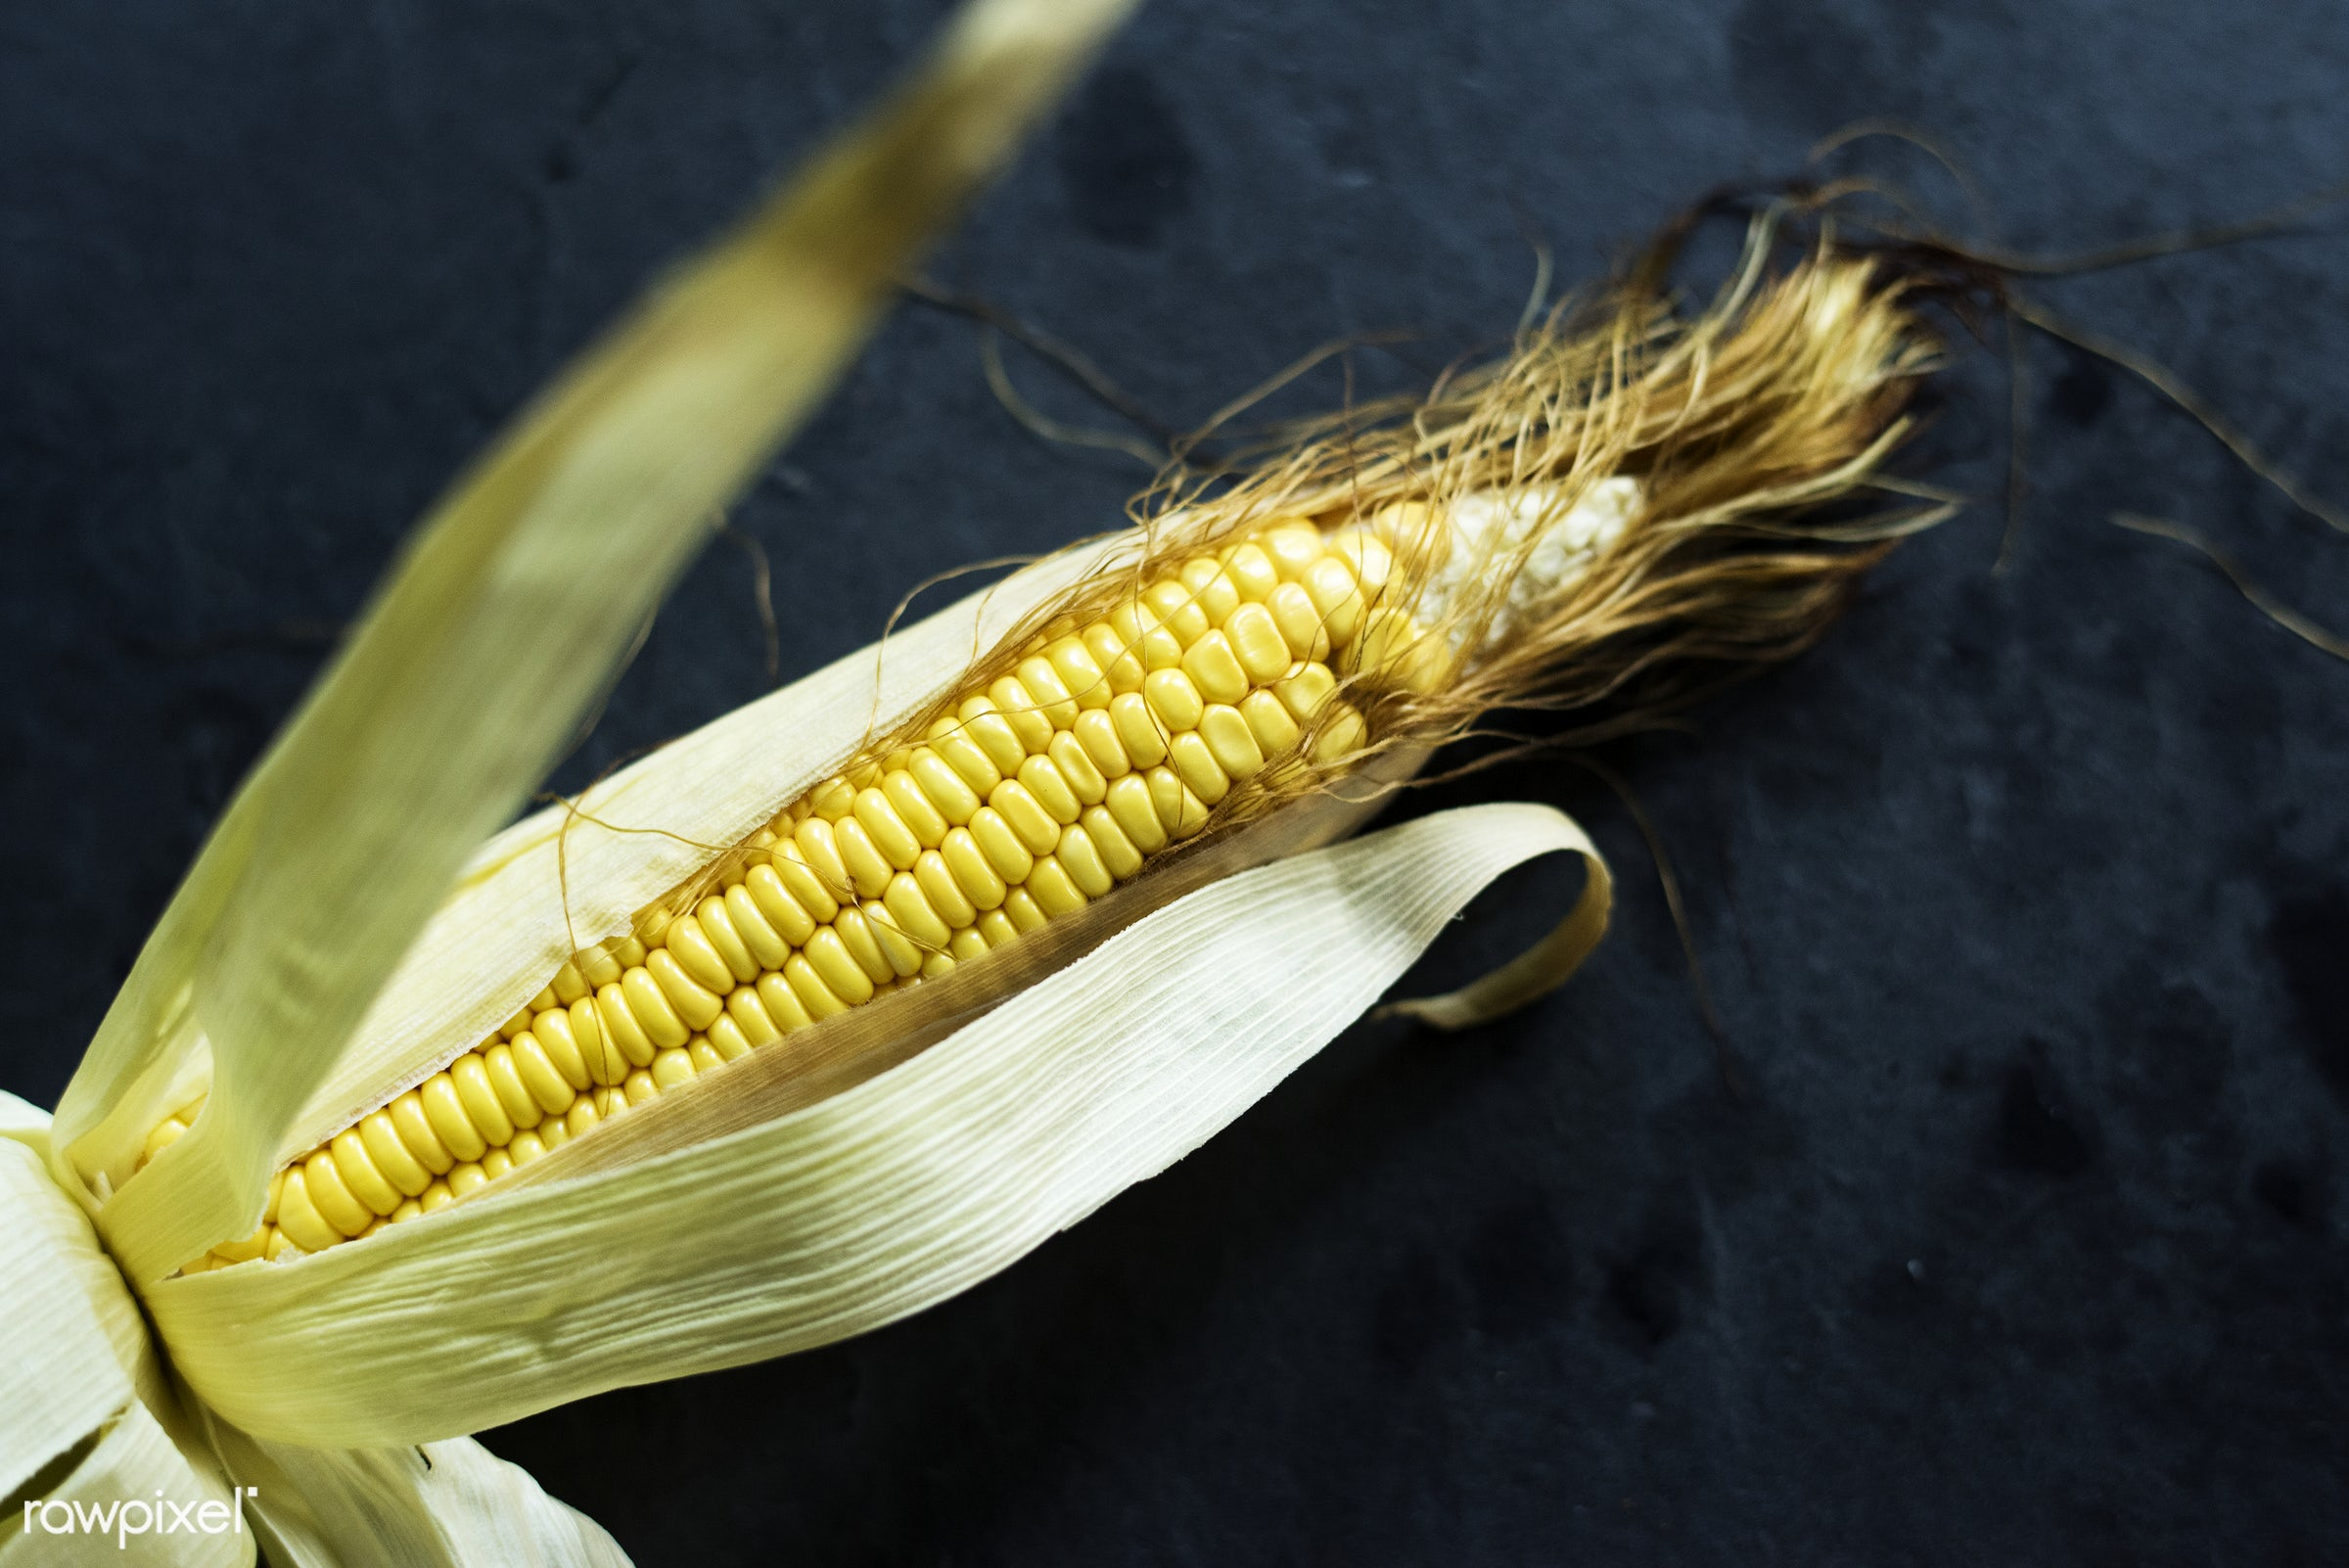 raw, plant, maize, agriculture, yellow, corn, organic, nature, fresh, grains, ripe, stalk, harvest, closeup